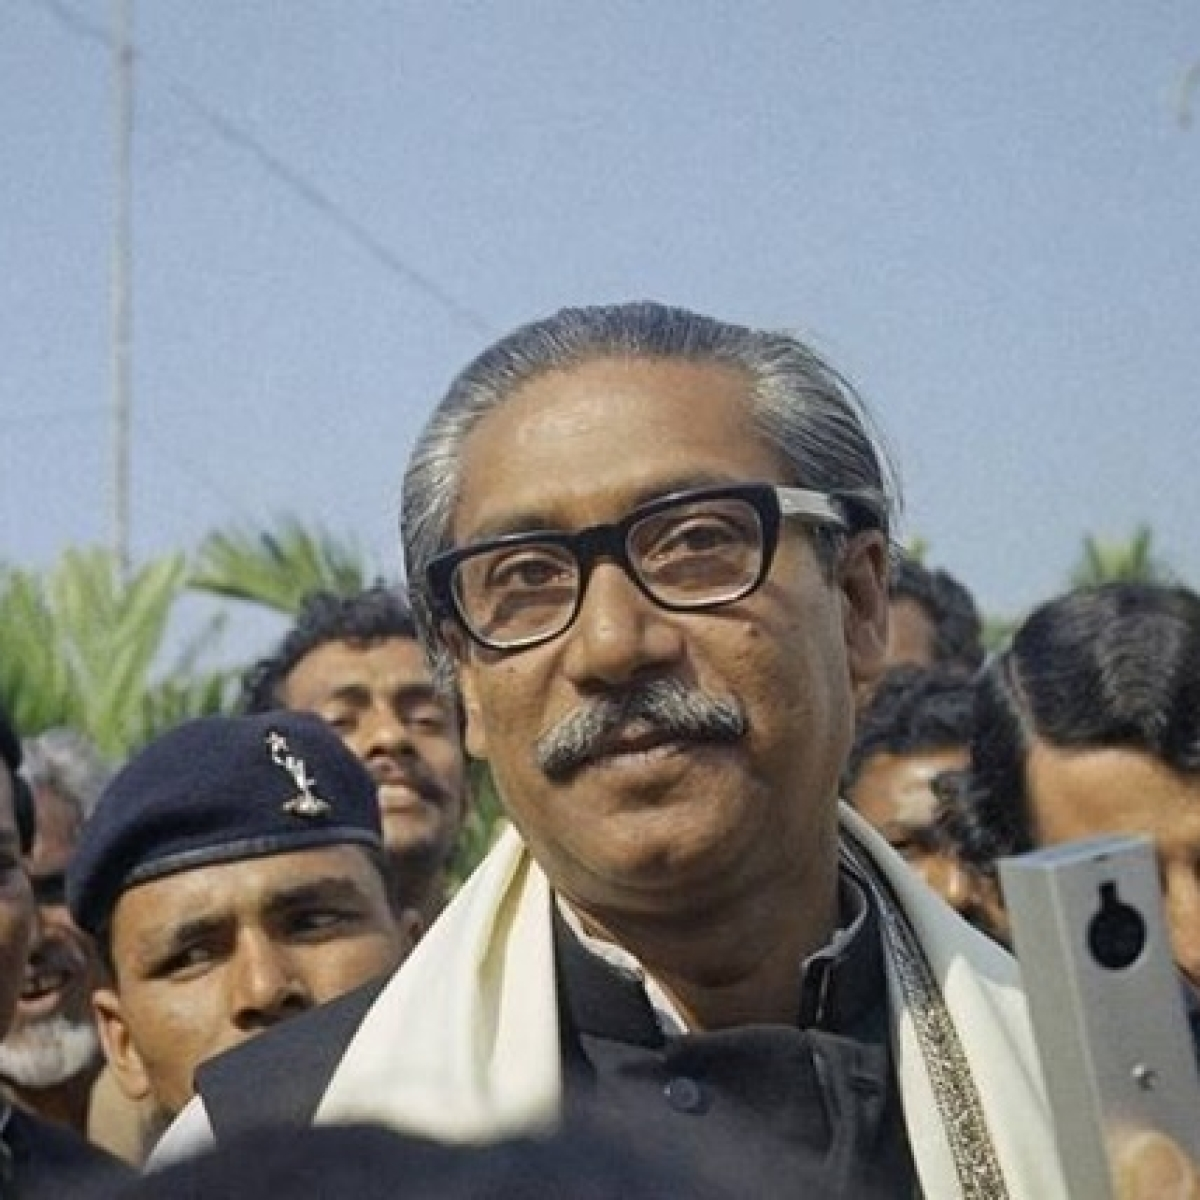 Bangladesh executes ex-Army officer who assassinated country's first President Sheikh Mujibur Rahman